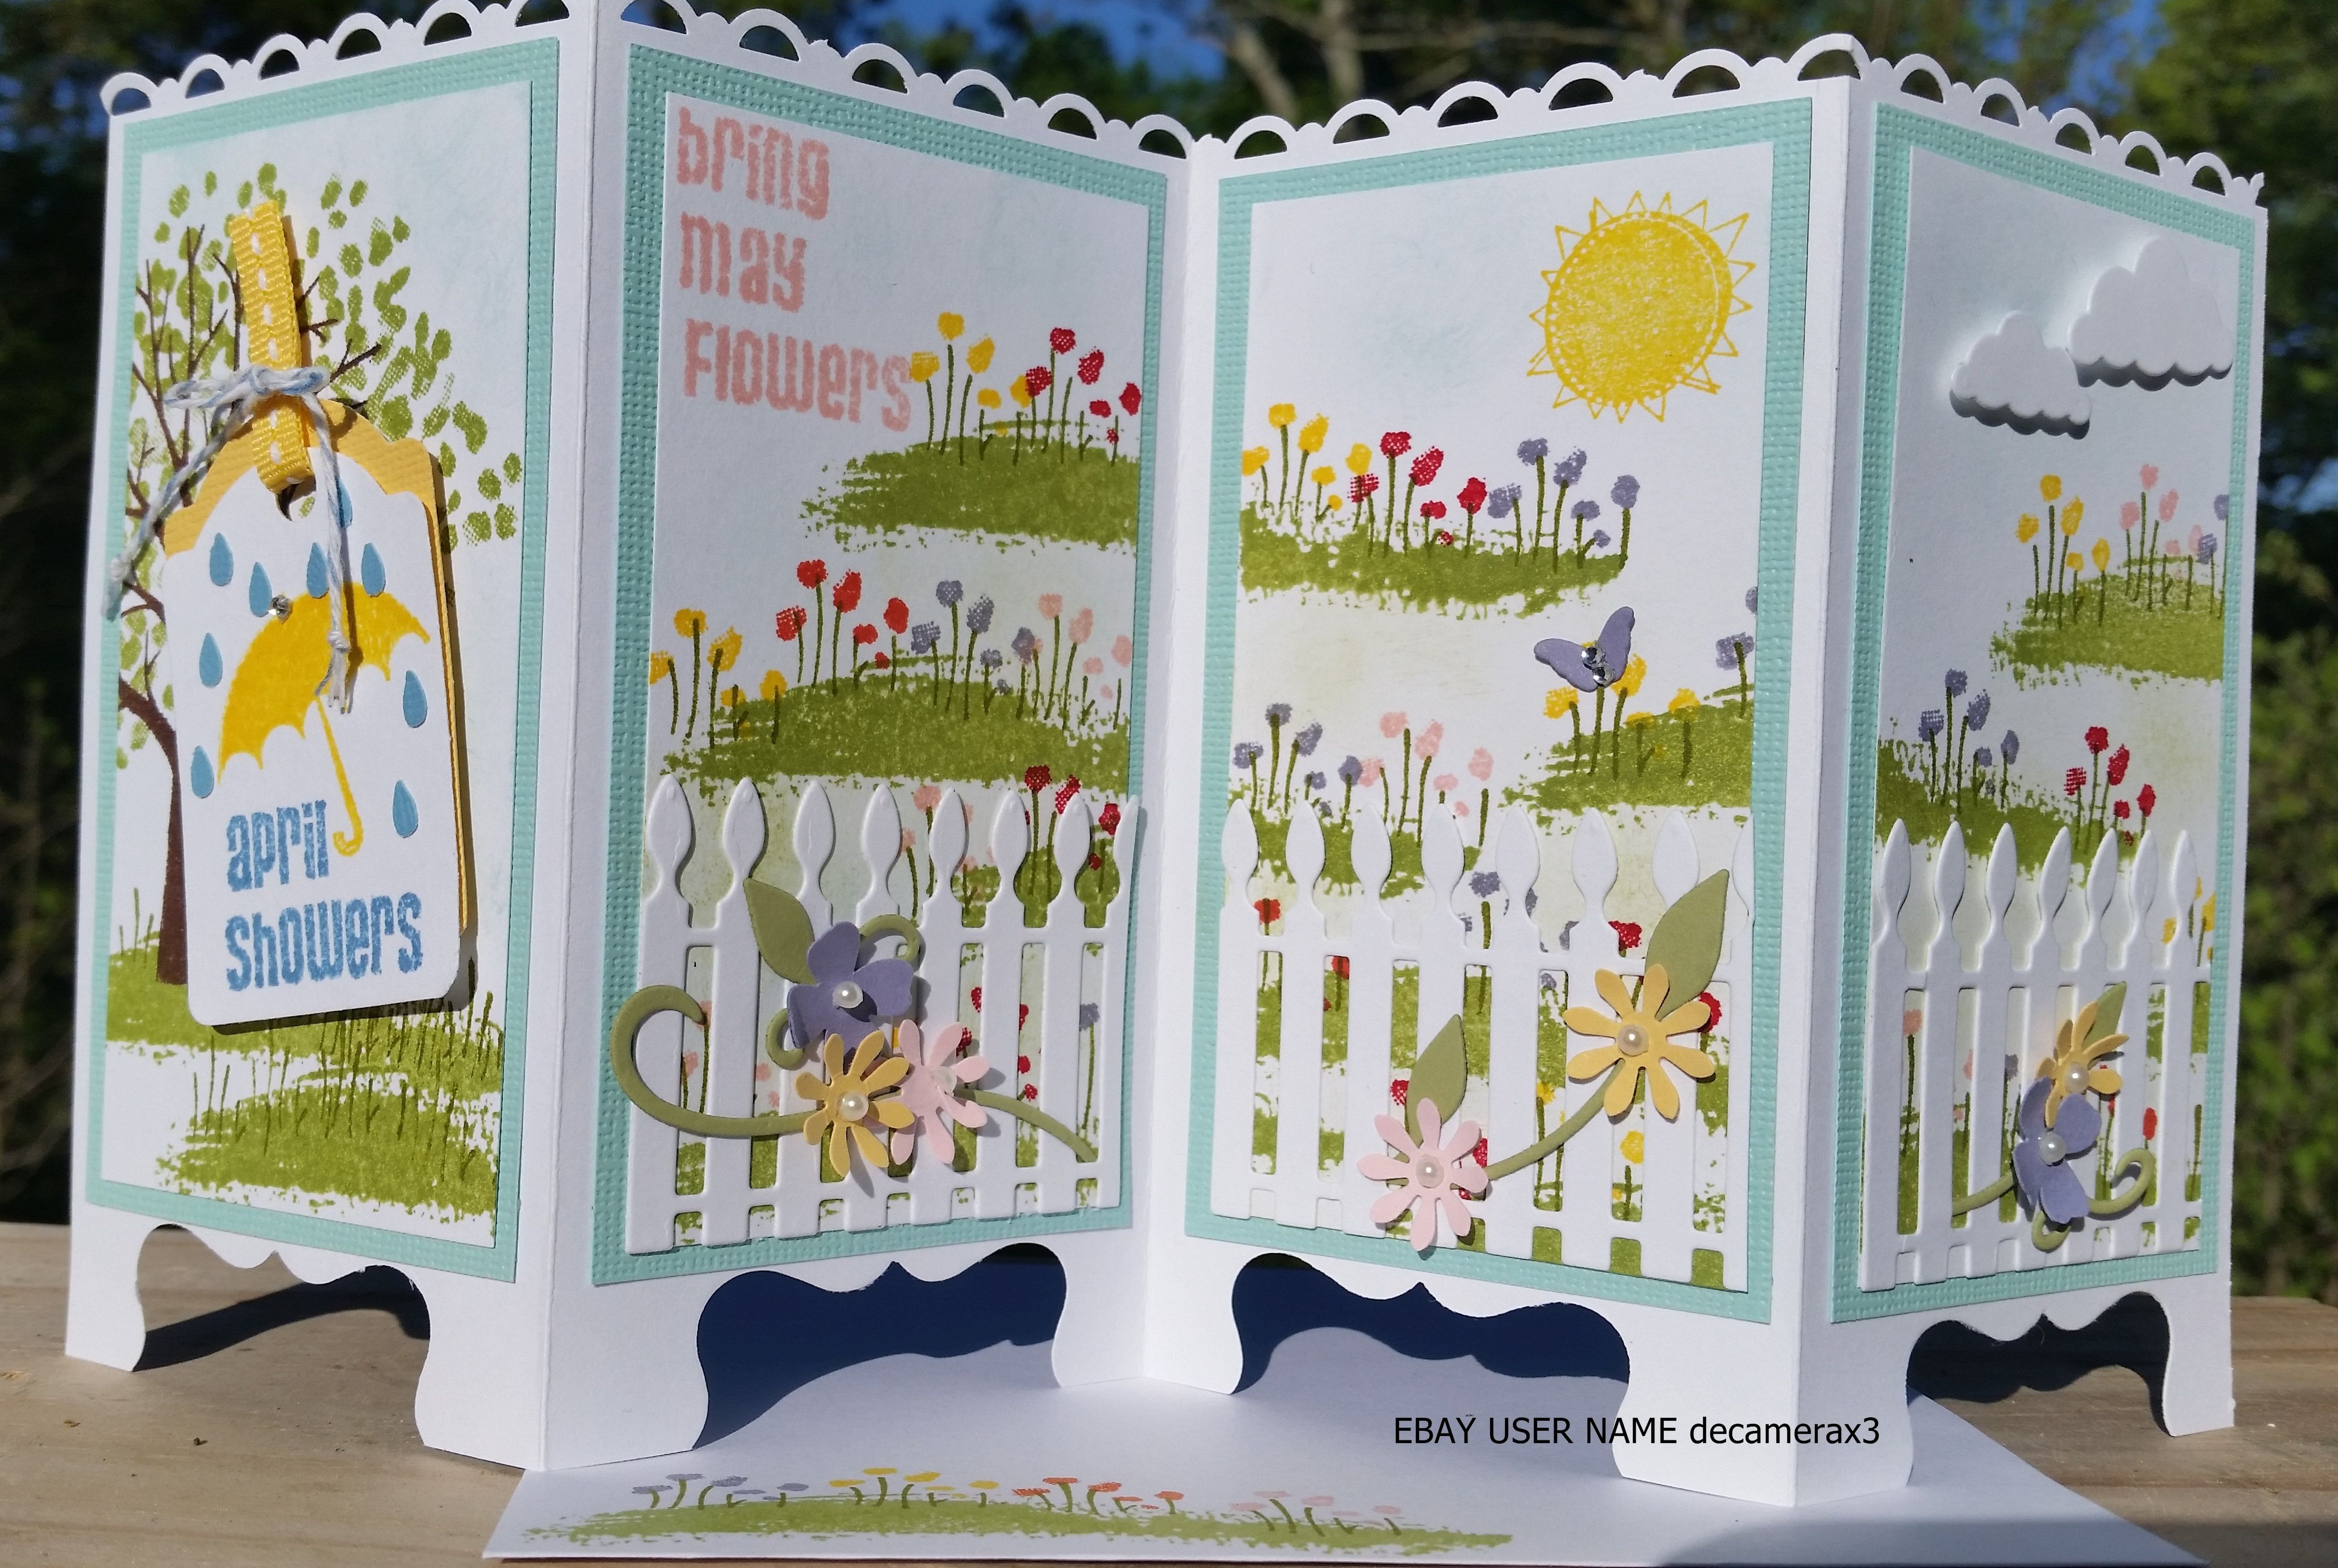 April Showers Bring May Flowers Screen Divider Card Used Sheltering Tree Stamp Set From Stampin Up Handmade By Quinn